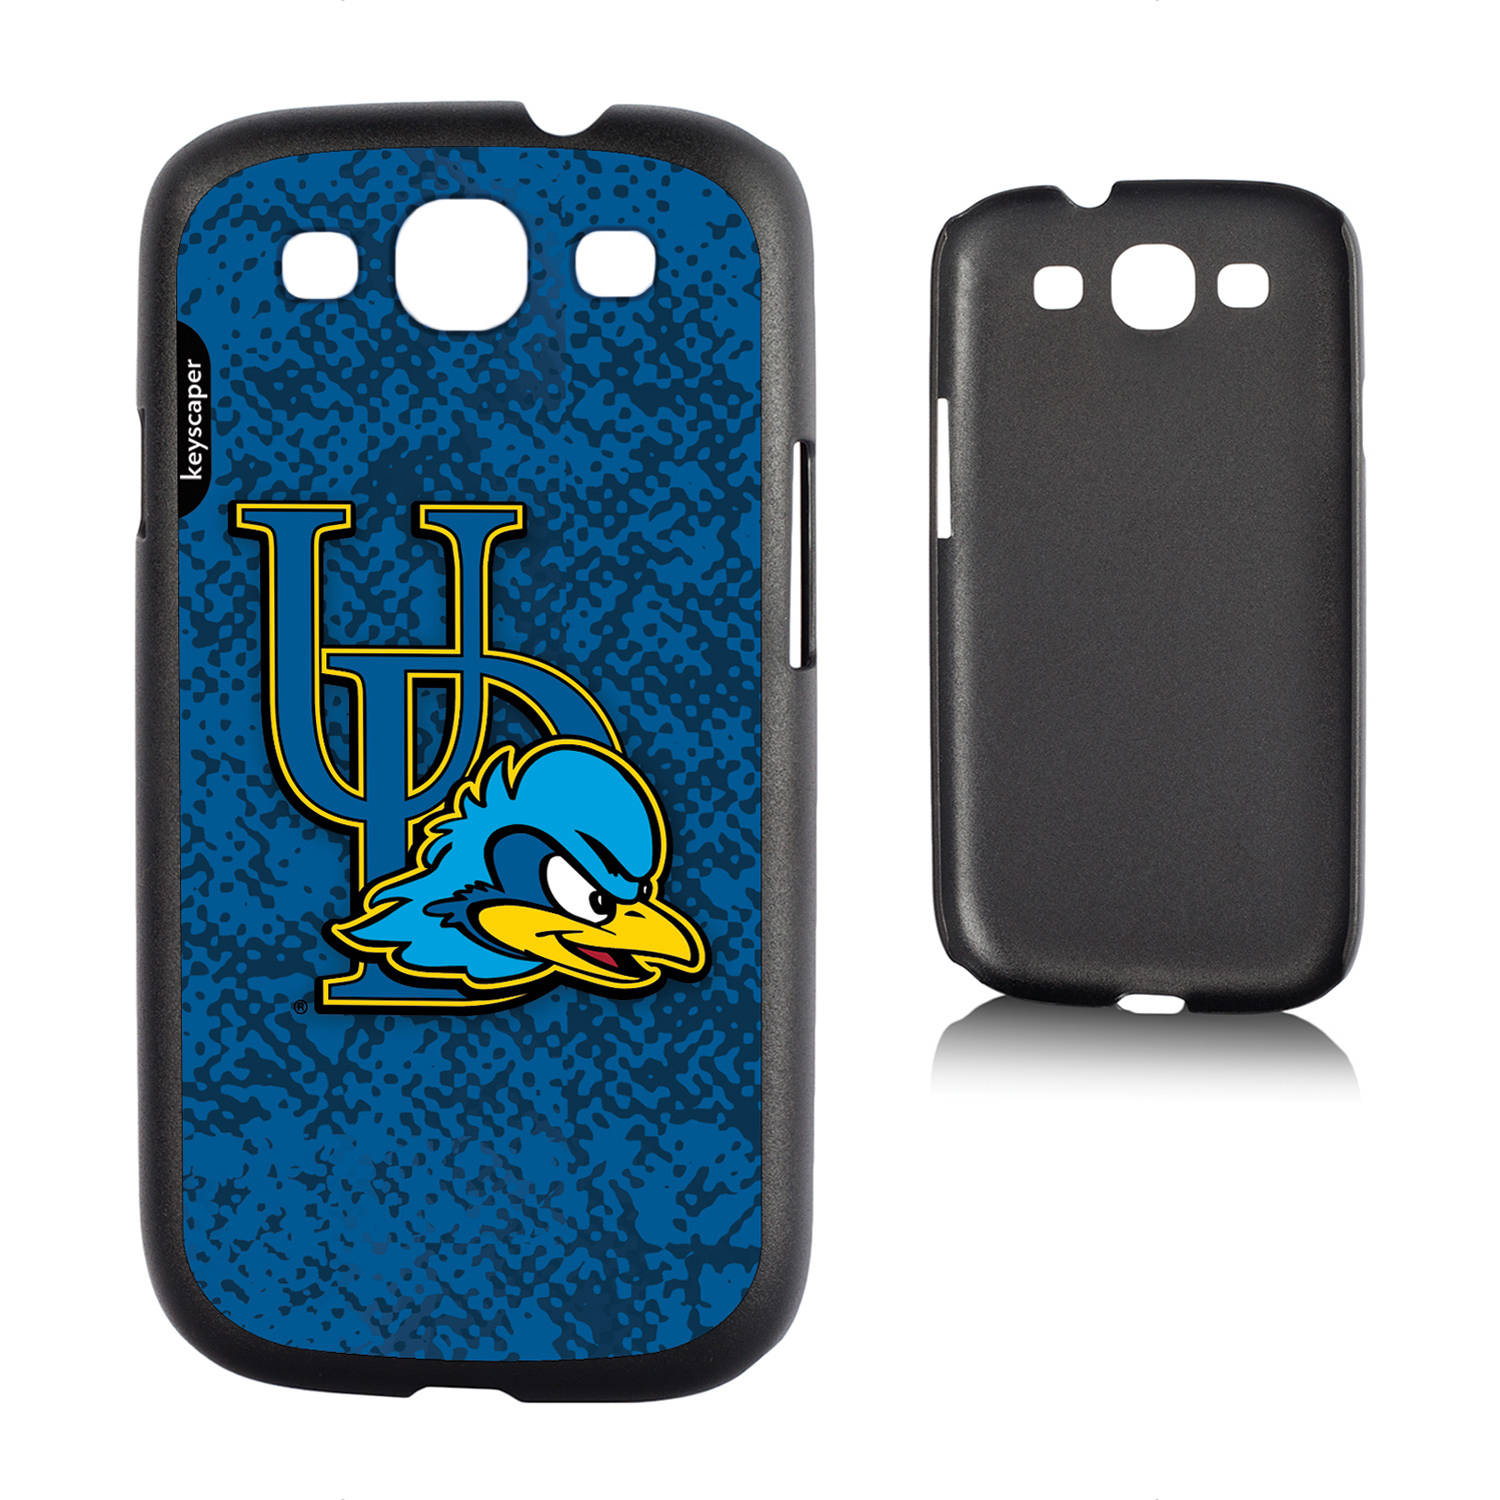 Delaware Fightin' Blue Hens Galaxy S3 Slim Case